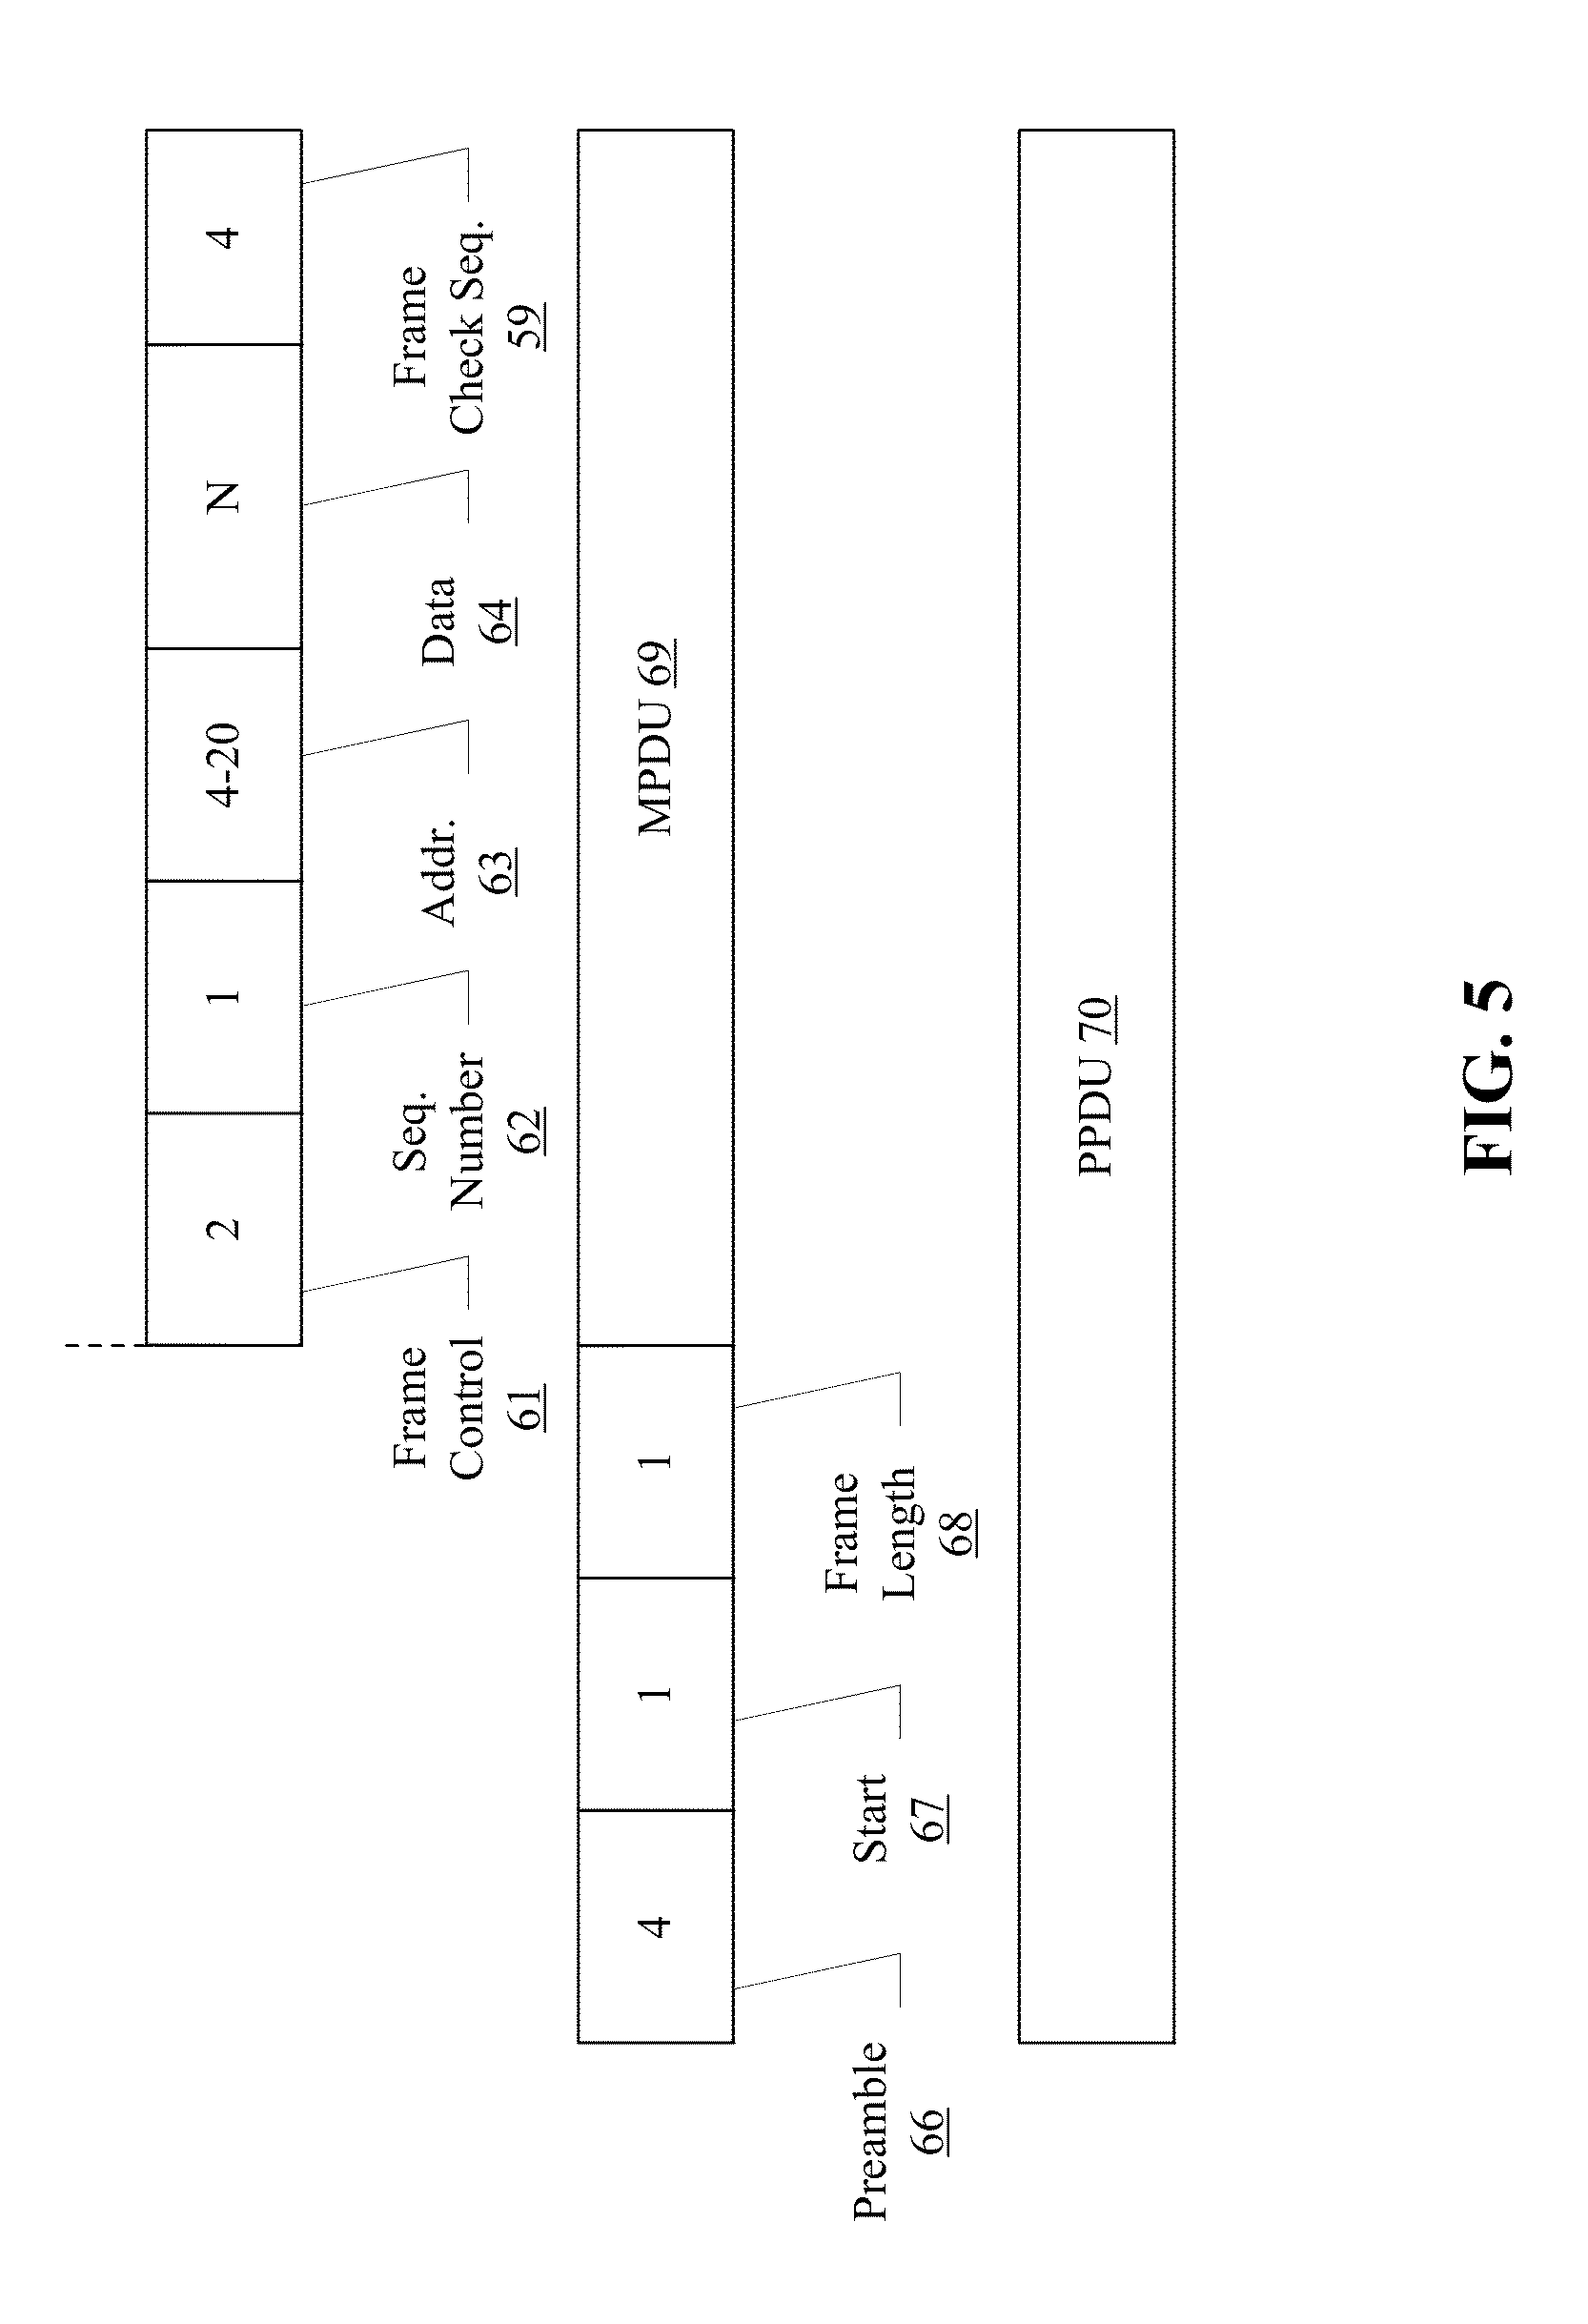 Patent Us 9386668 B2 Triac Symbol In Addition Function Generator Circuit Likewise Pneumatic 0 Petitions